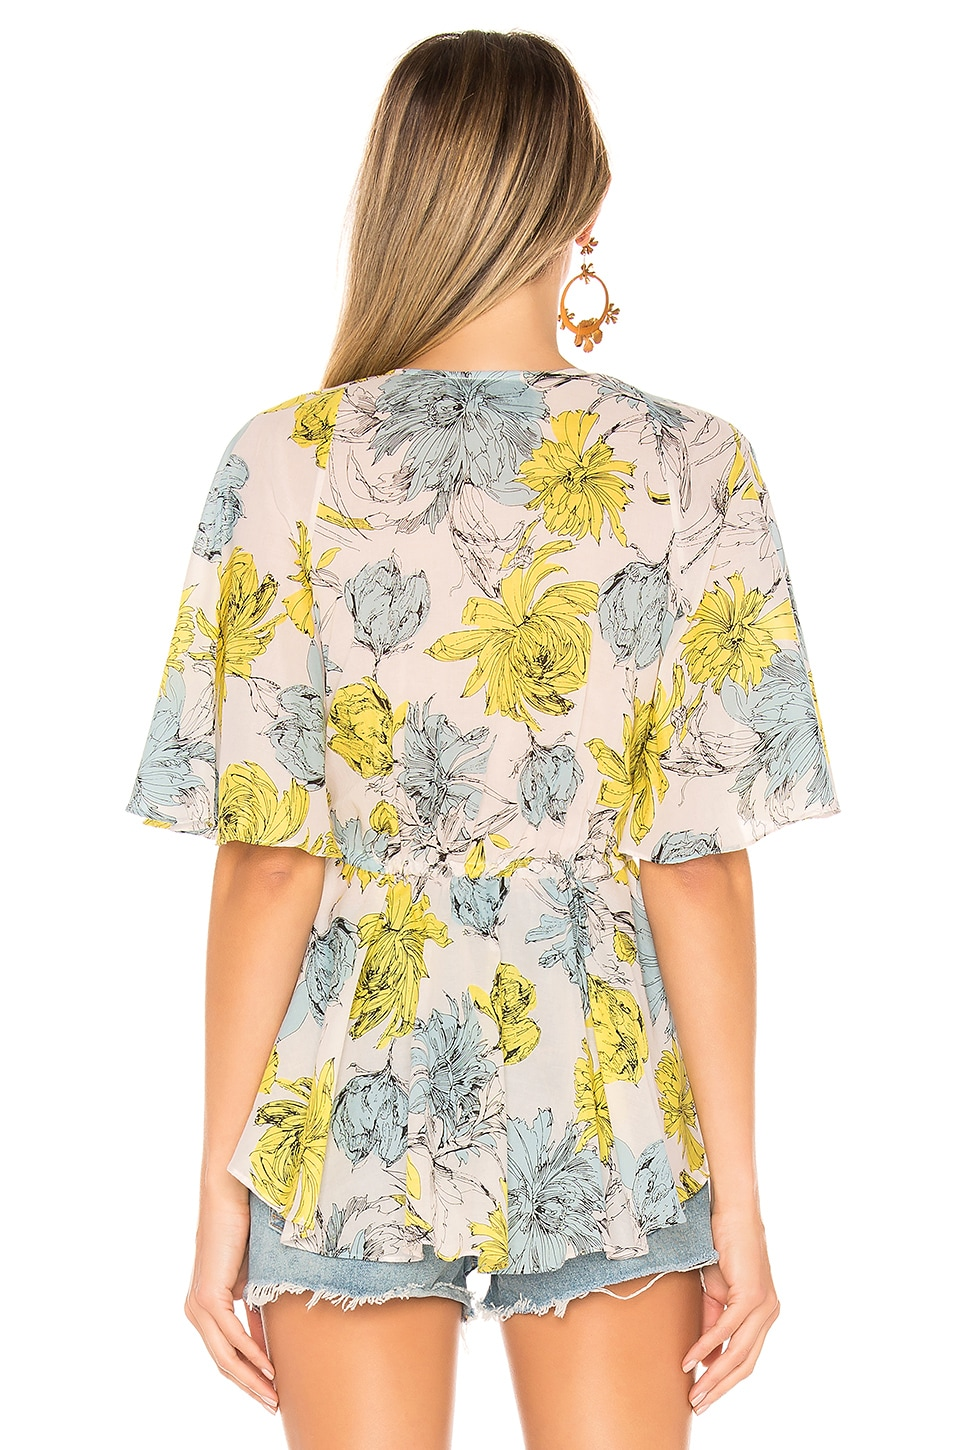 Alexis Accessories Dayal Top